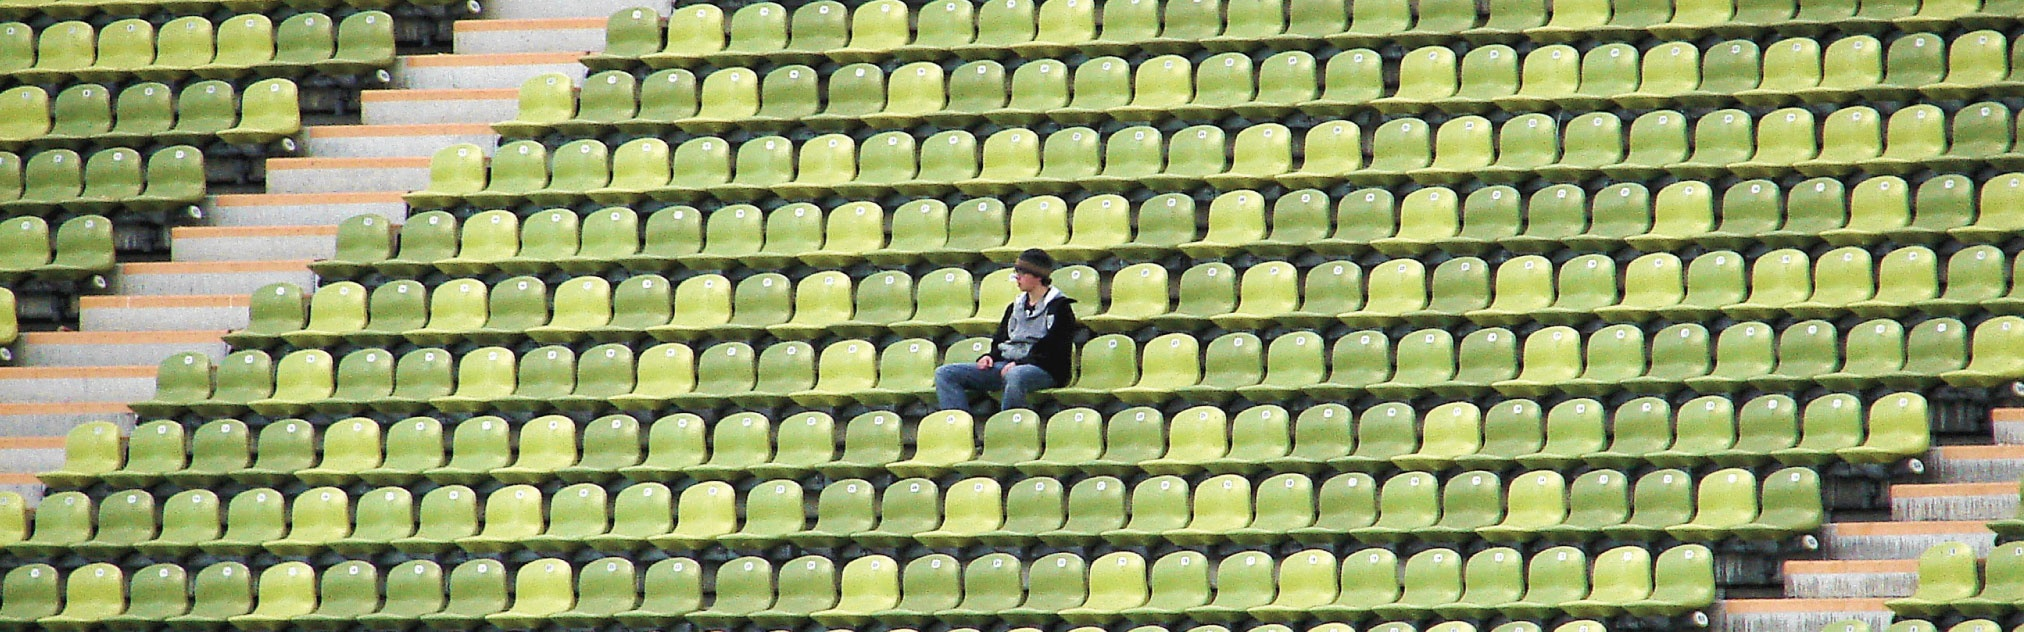 A fan sits alone in a stadium